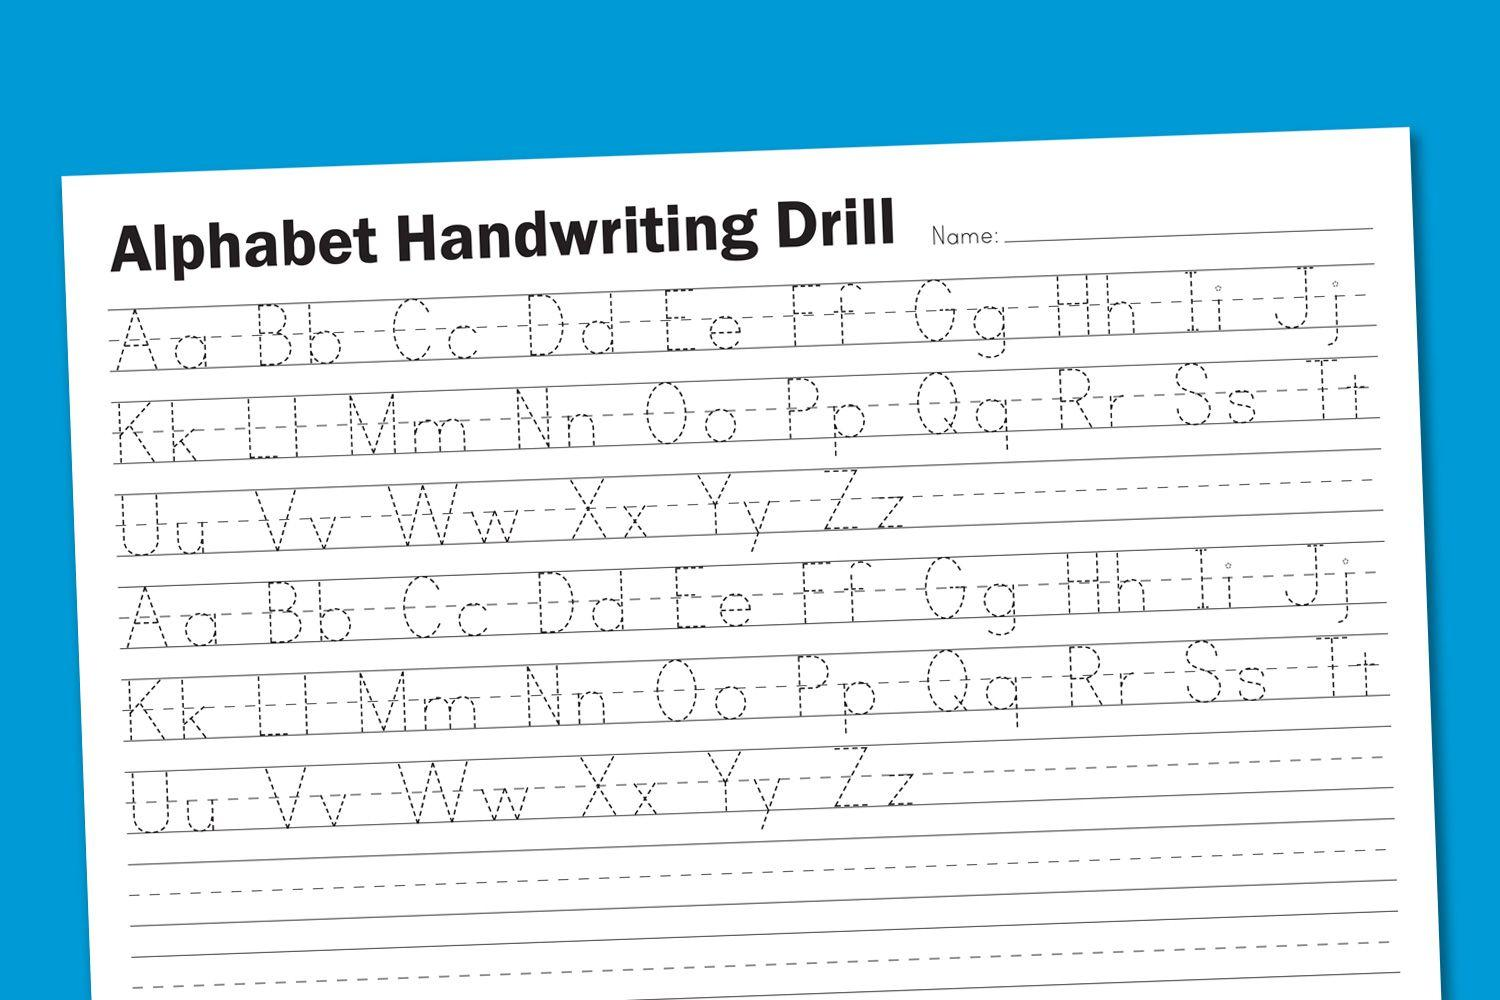 Printable Preschool Handwriting Worksheets